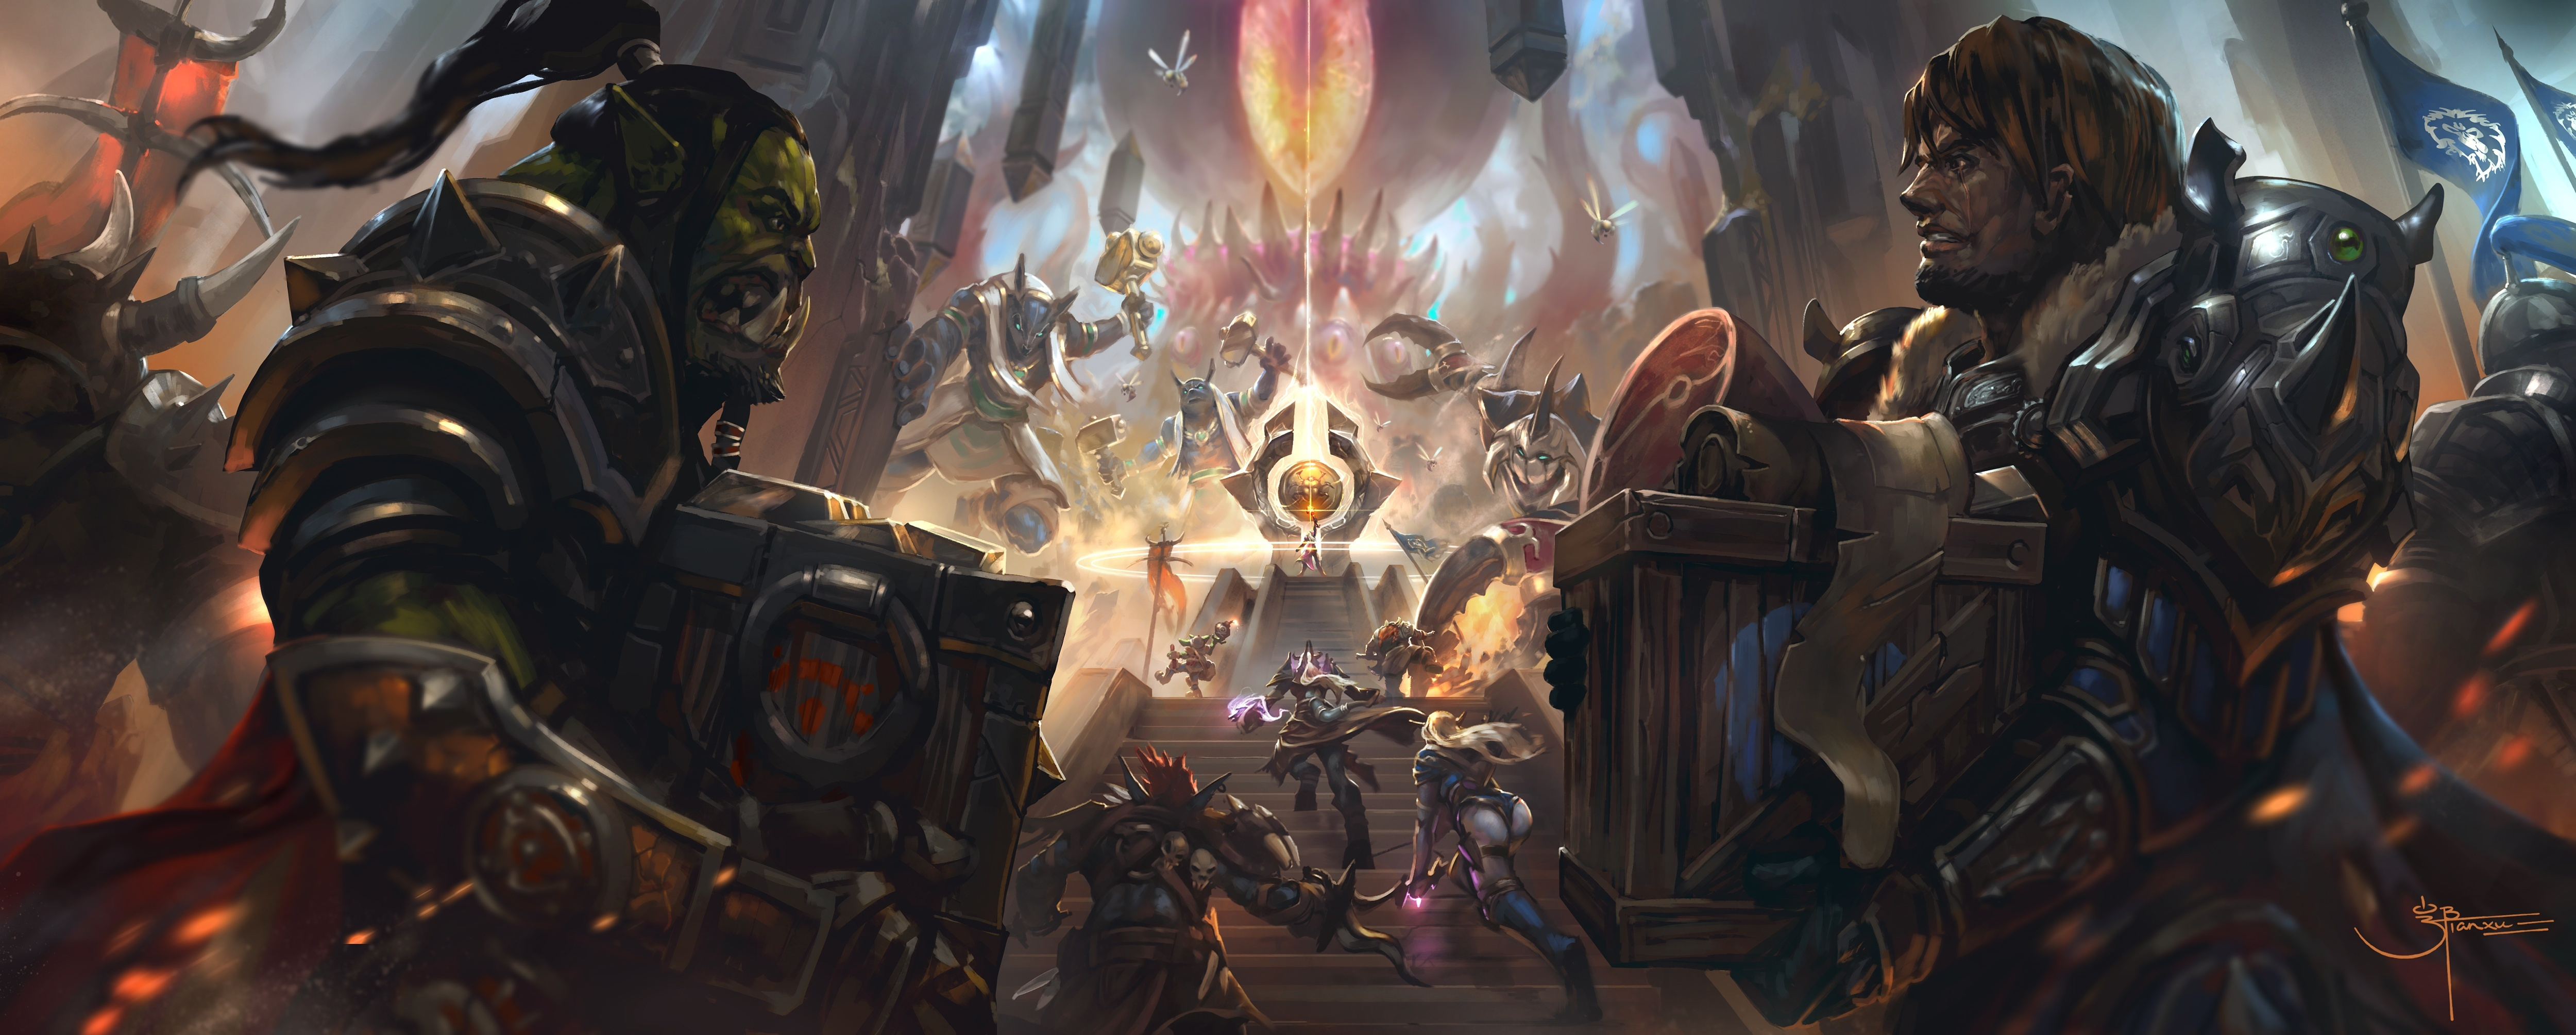 World Of Warcraft 13th Anniversary Art Contest Winners